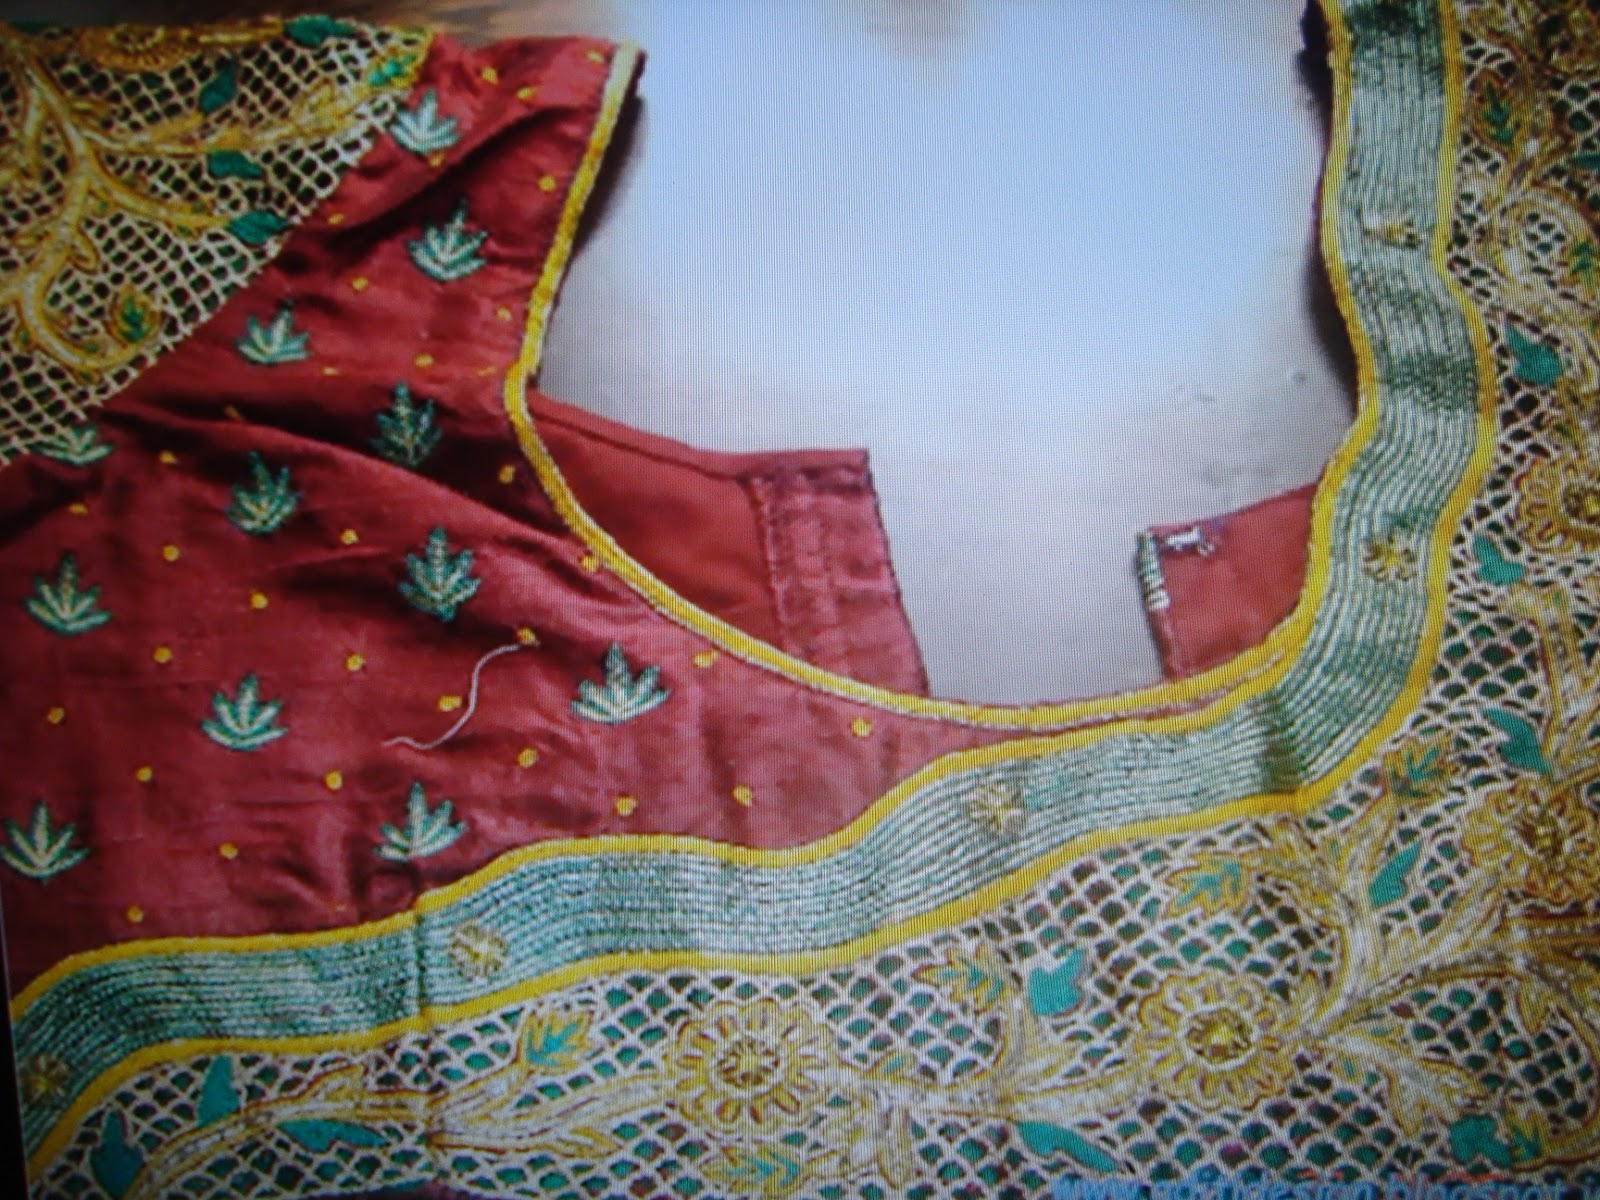 Blouse Back Neck Machine Embroidery Designs 21th Blouse Wearing